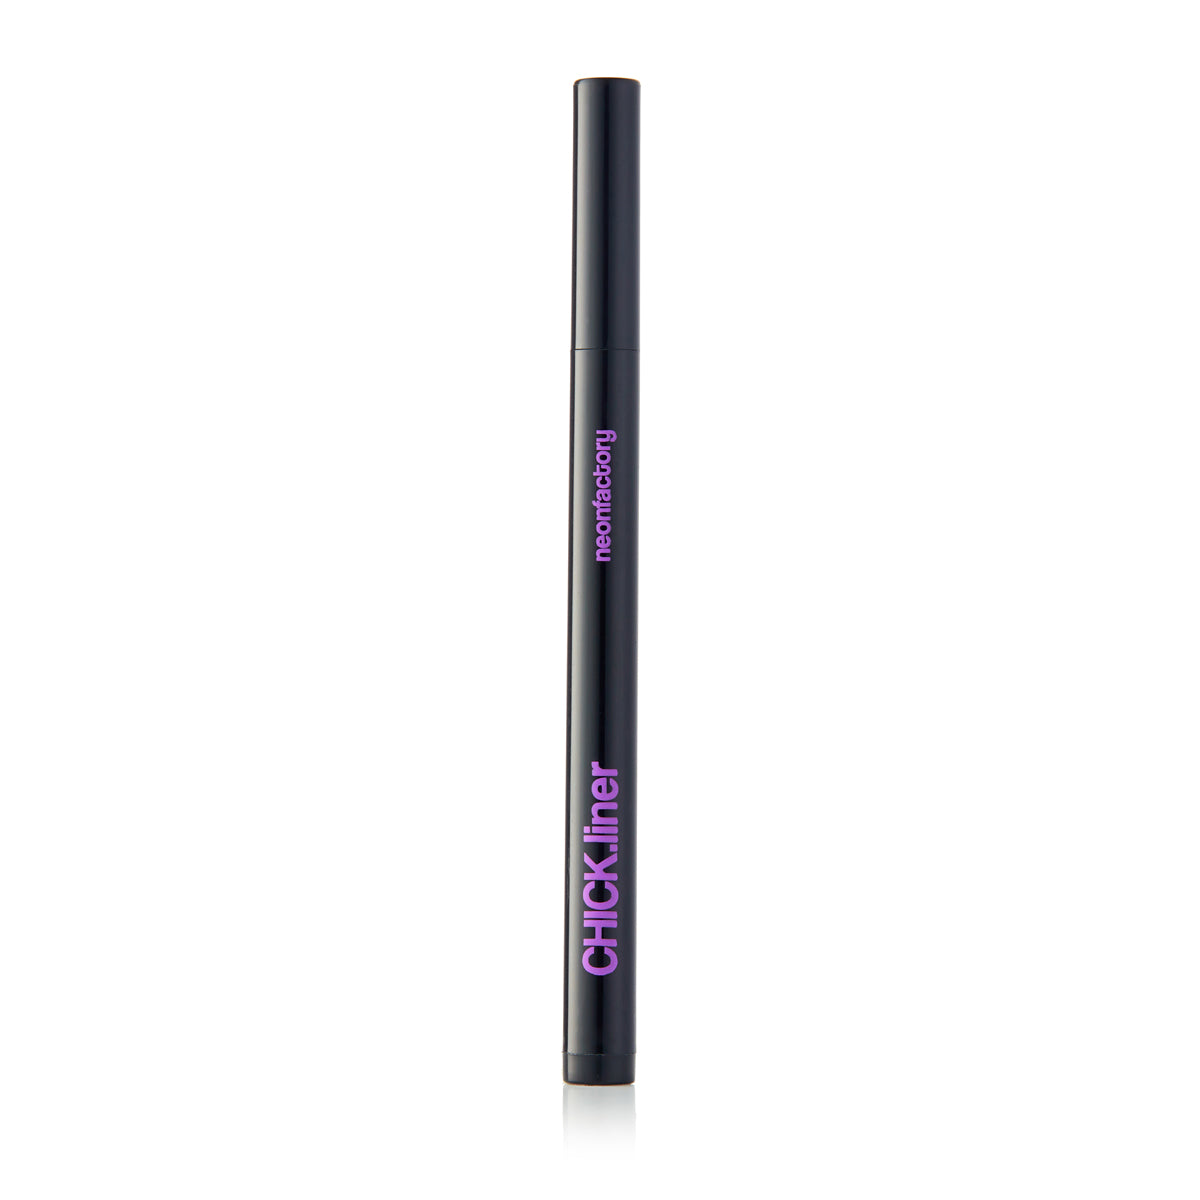 CHICK.liner Liquid Eyeliner - Pinky Promise